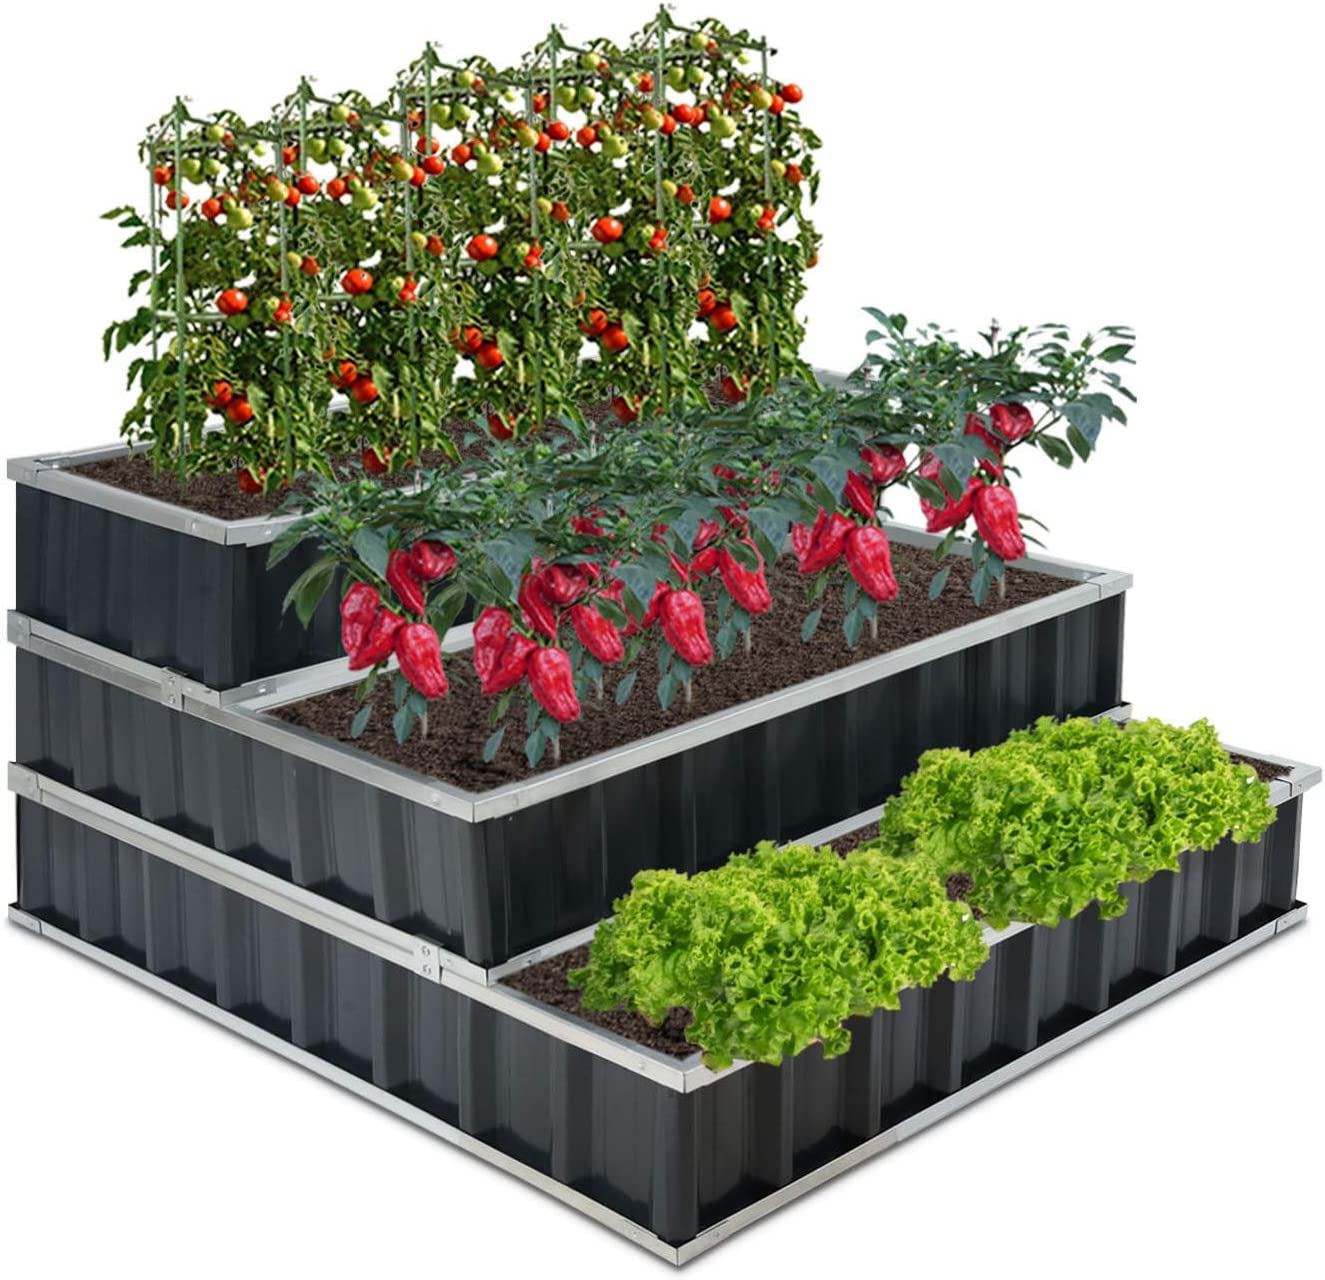 GROWNEER 3 Tier 4 x 4 x 2 Feet Dark Gray Metal Raised Garden Bed with 1 Pair of Gloves and 15 Pcs Plant Labels, Elevated Planter Box for Vegetables, Fruits, Flowers, Herbs